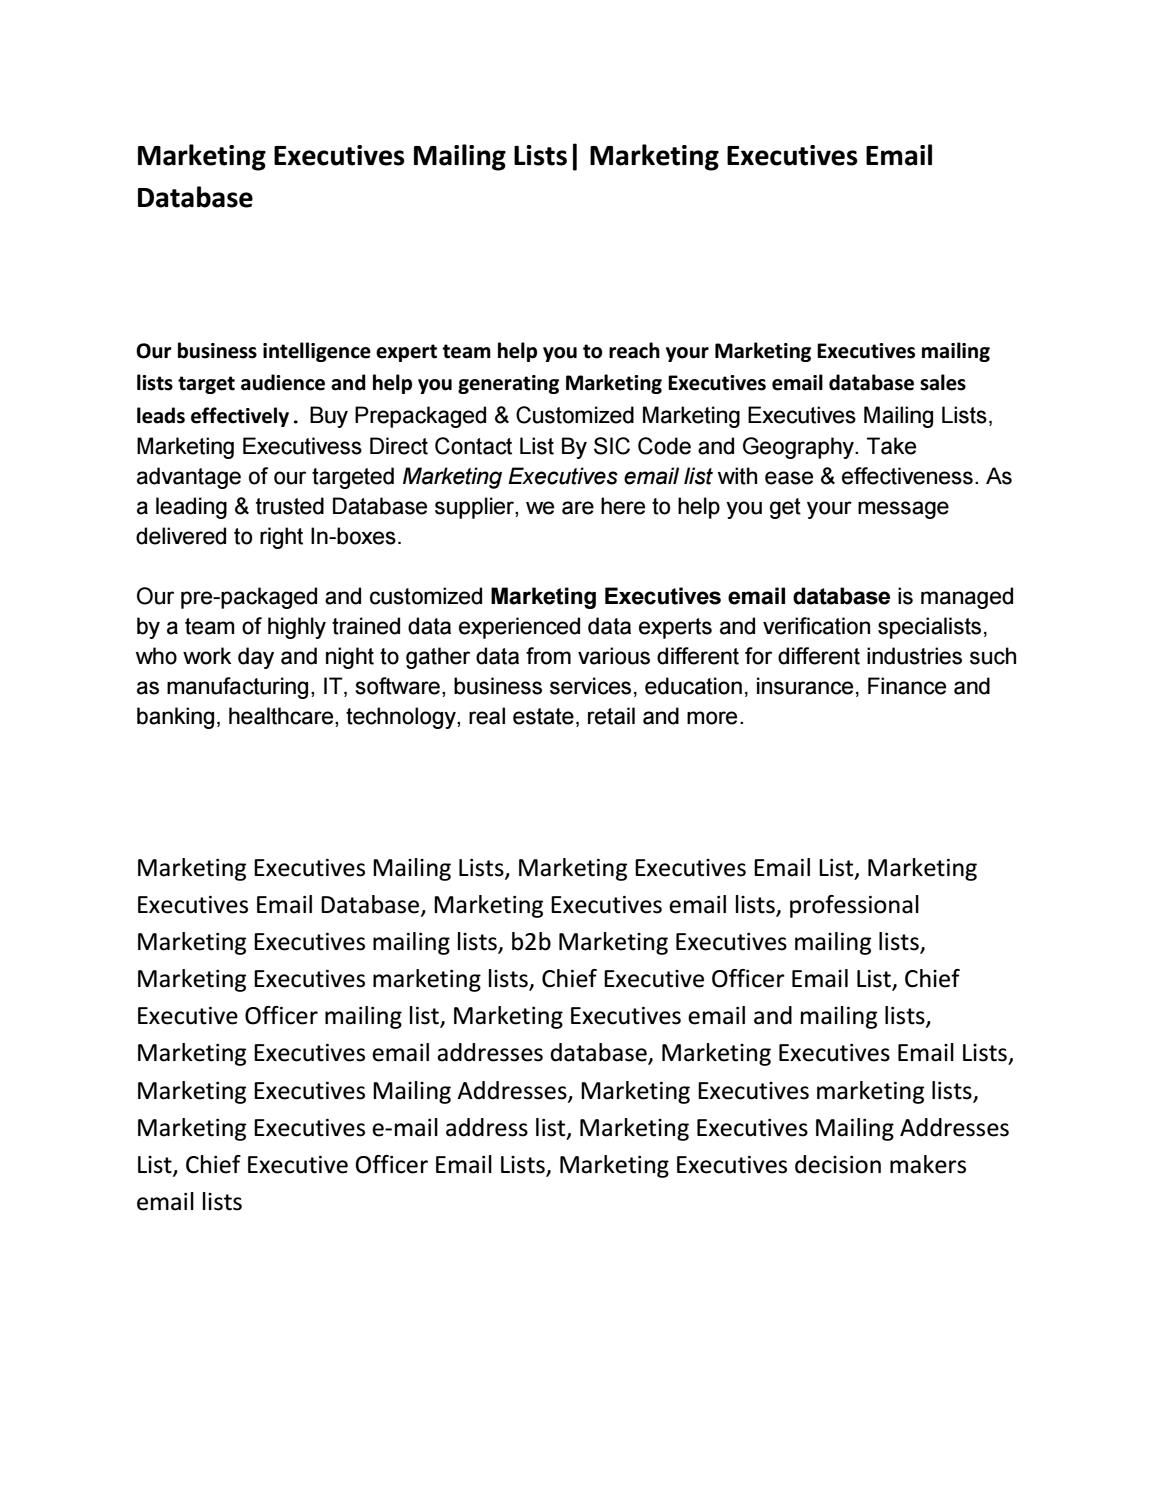 Marketing executives mailing lists (With images) Mailing